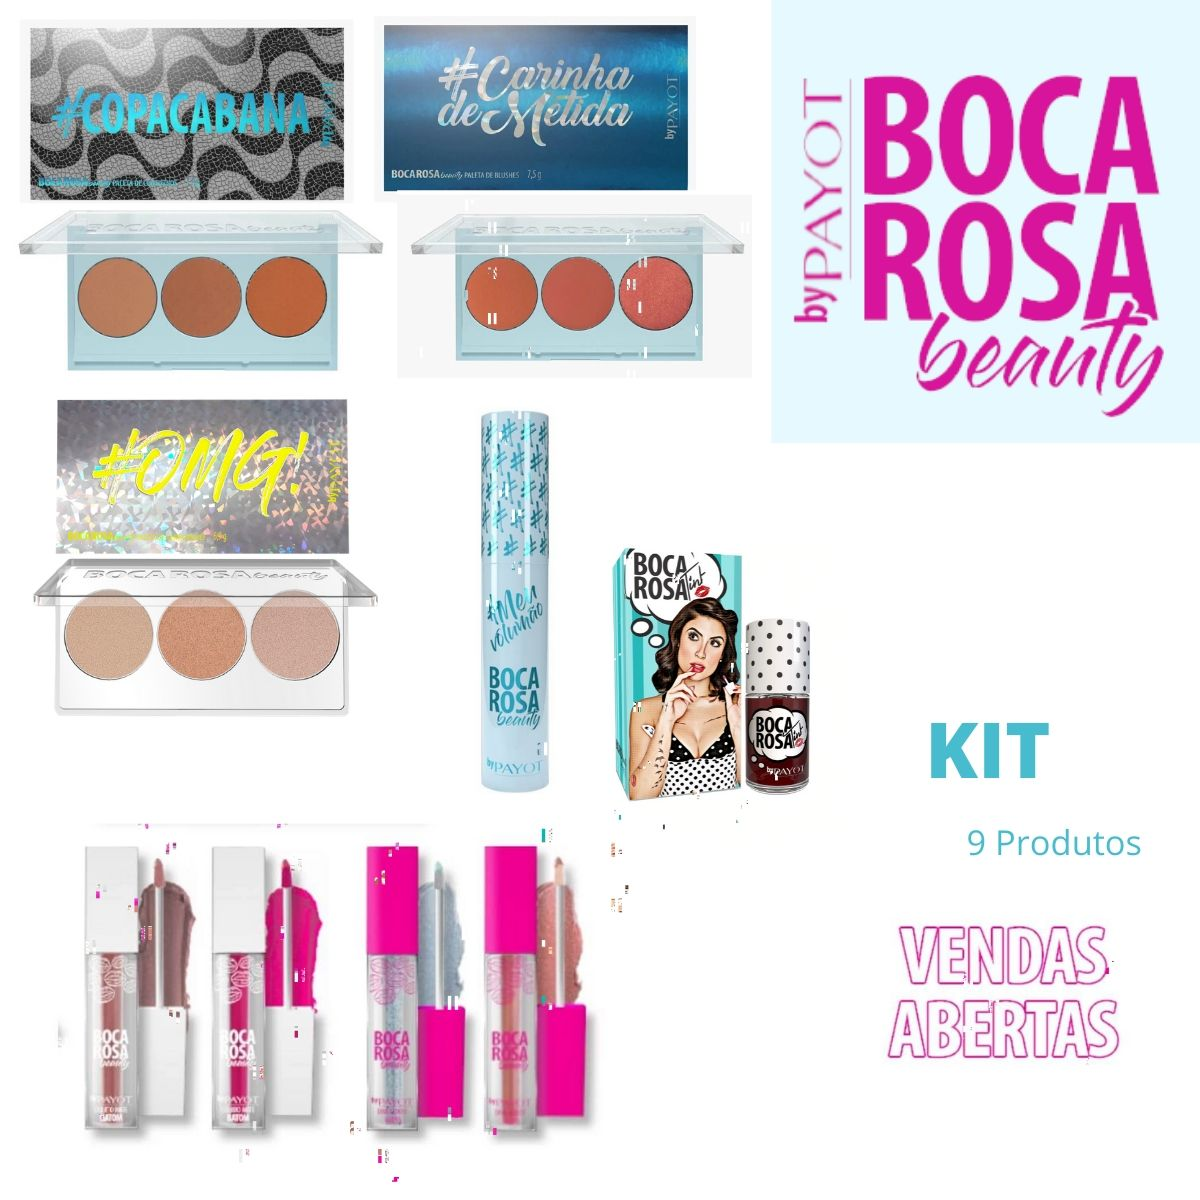 Kit Boca Rosa beauty by Payot - 9 Produtos